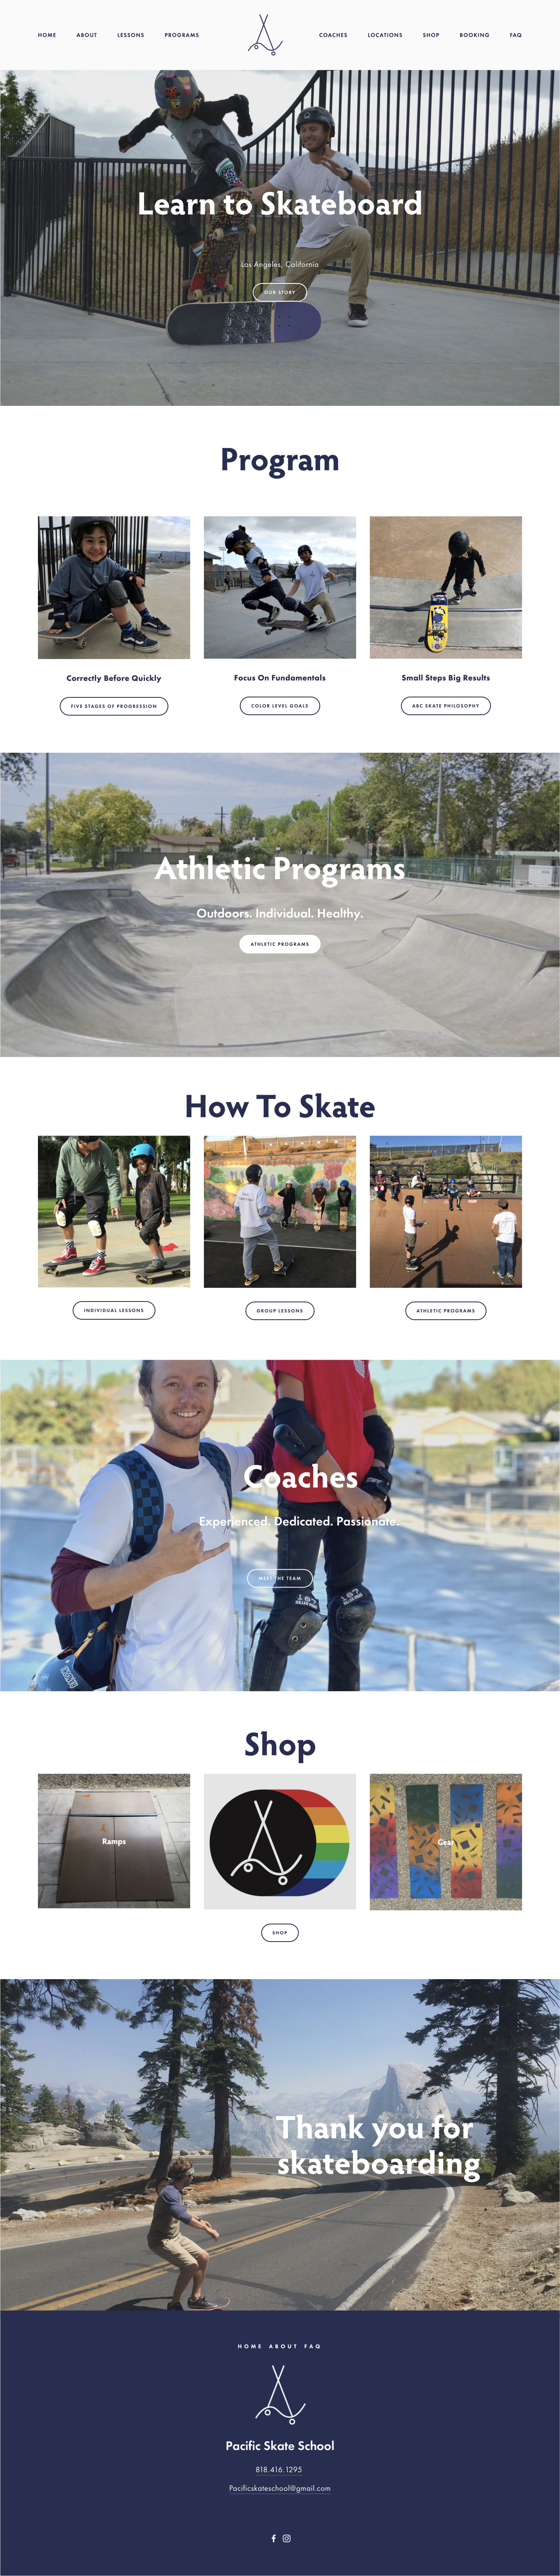 Pacific Skate School Home Page